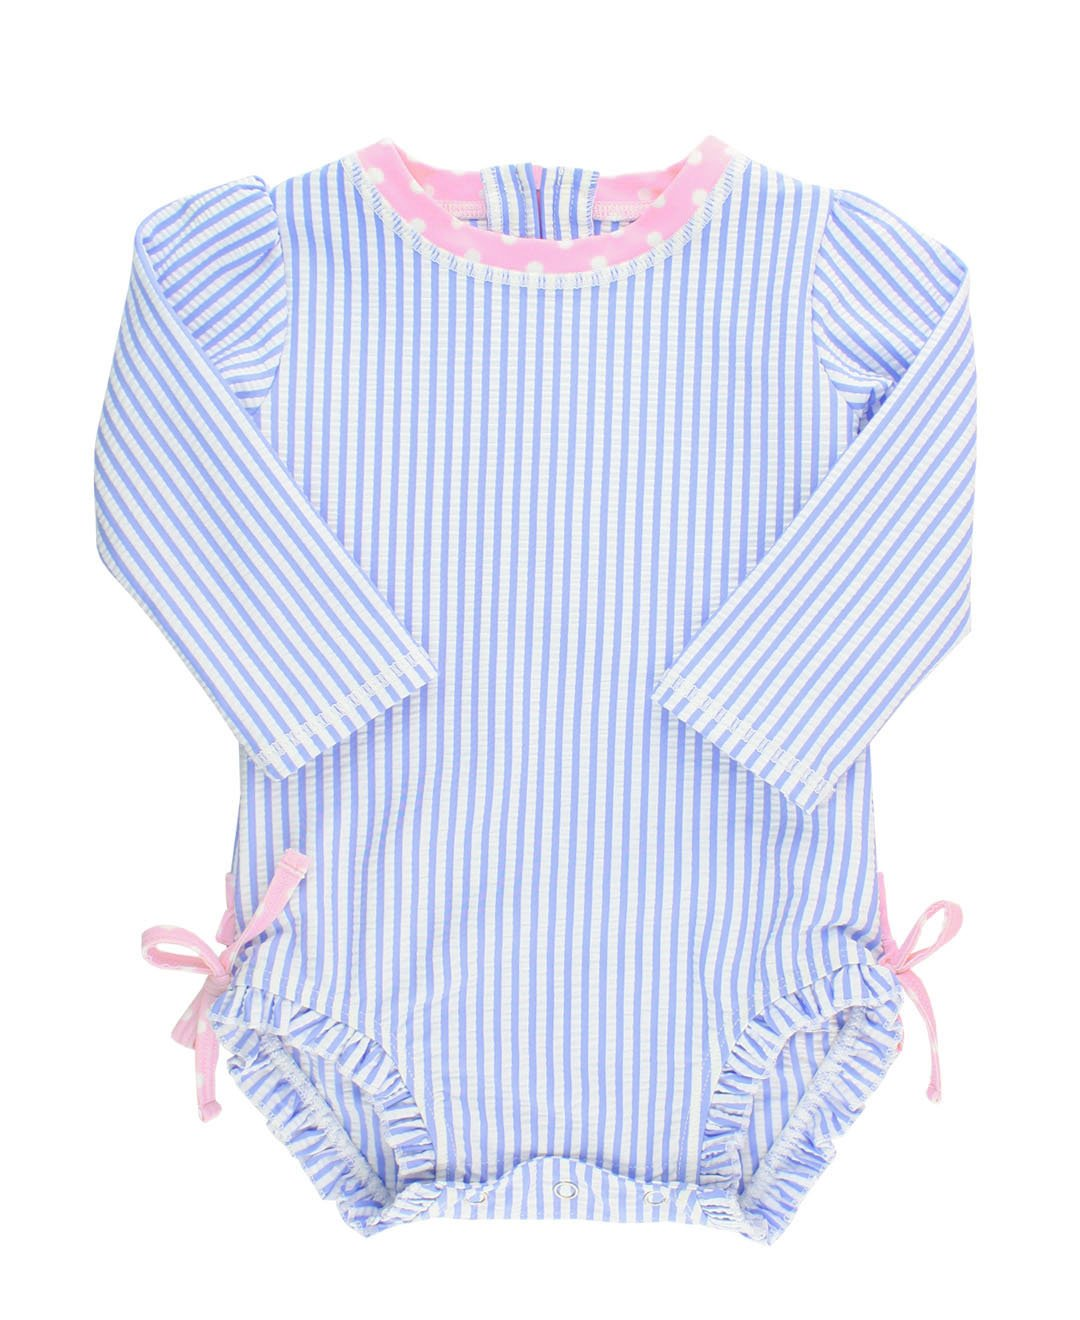 RuffleButts Baby/Toddler Girls Long Sleeve One Piece Swimsuit - Blue Seersucker with UPF 50+ Sun Protection - 6-12m by RuffleButts